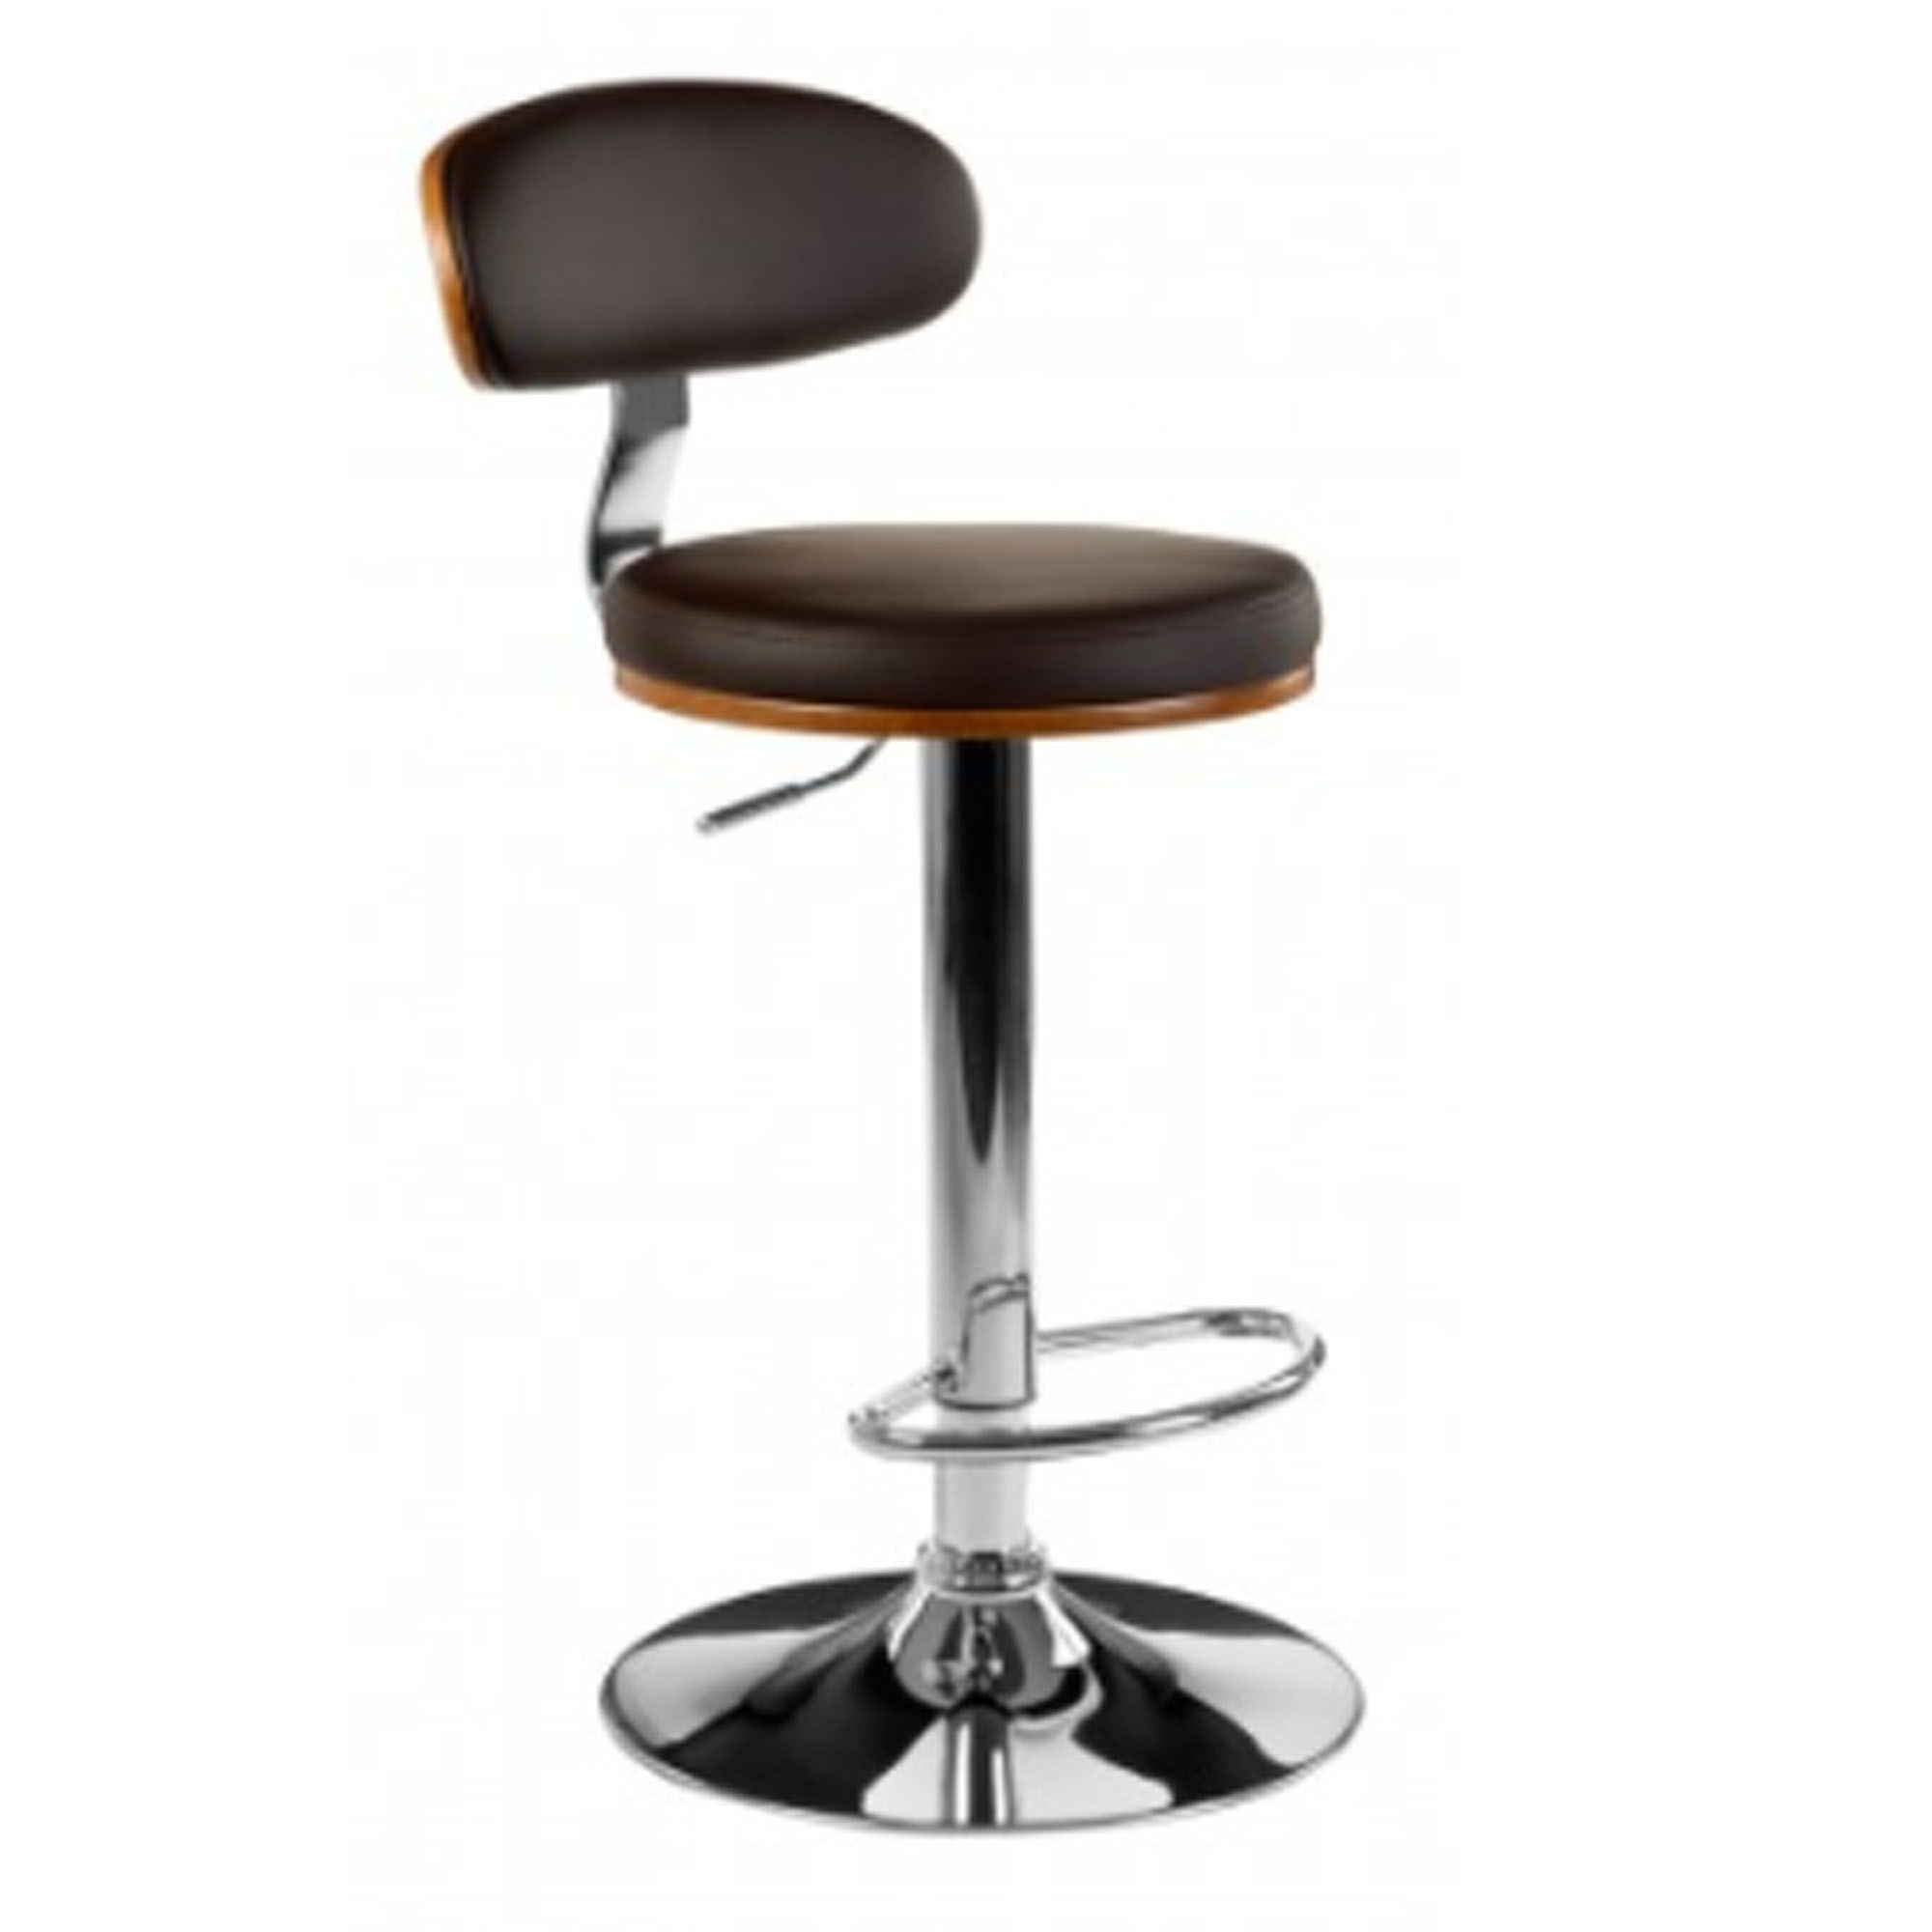 Astounding Brown Vintage Bar Chair Caraccident5 Cool Chair Designs And Ideas Caraccident5Info